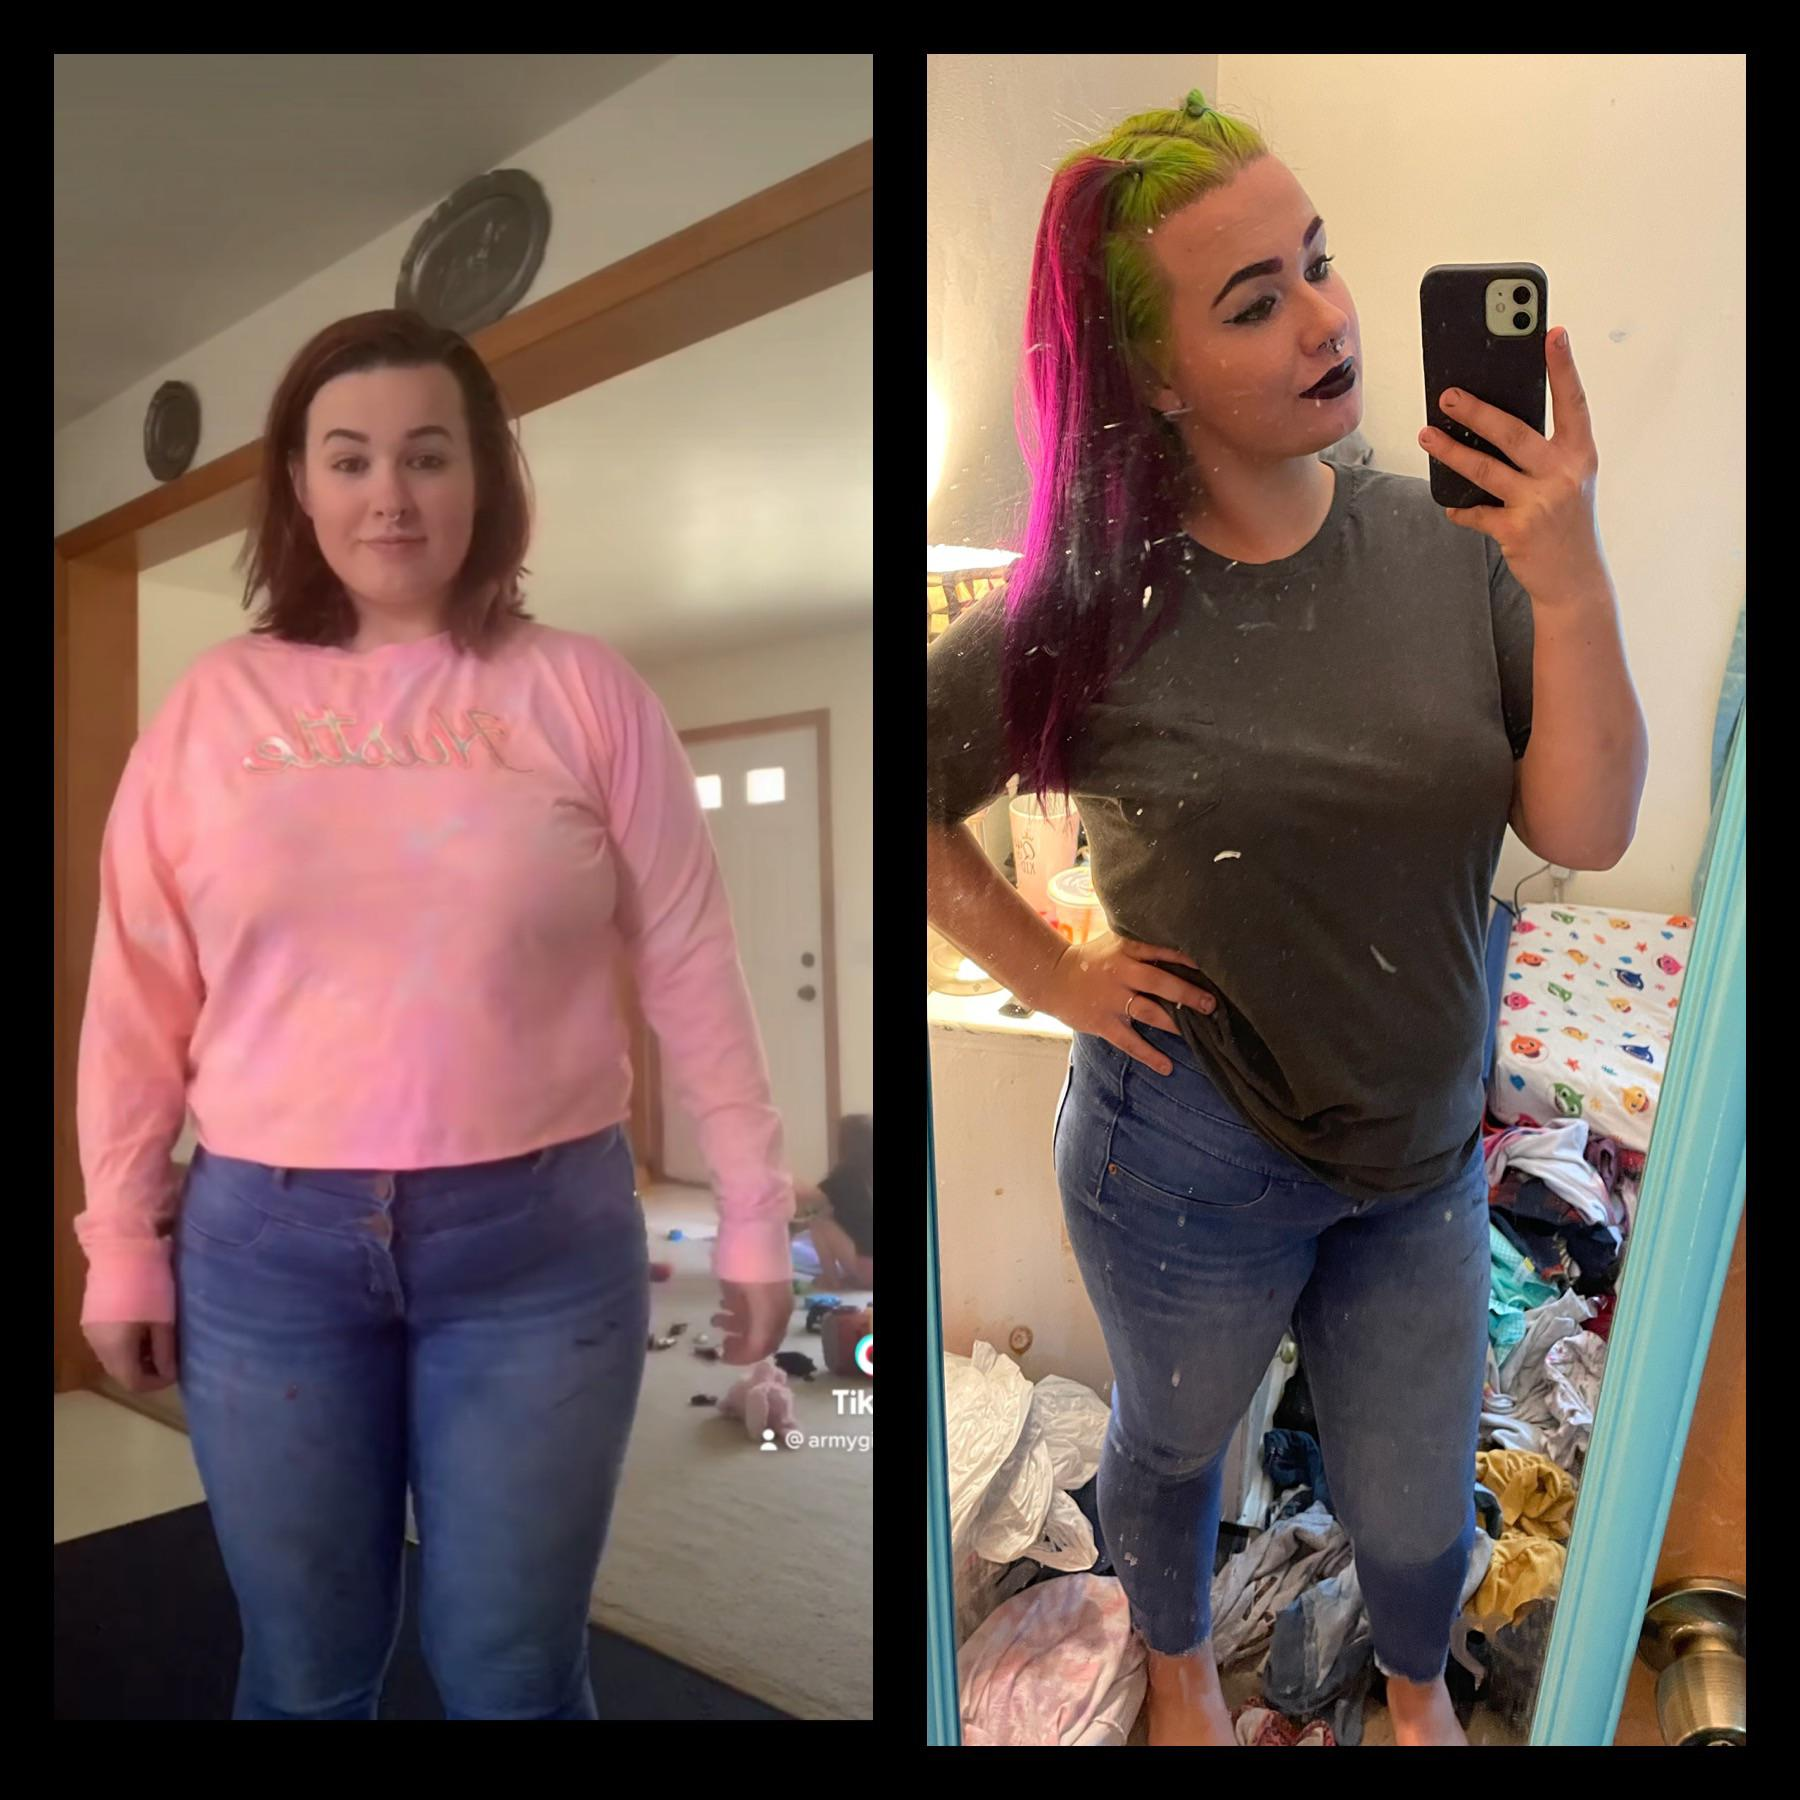 5'4 Female Before and After 28 lbs Fat Loss 218 lbs to 190 lbs